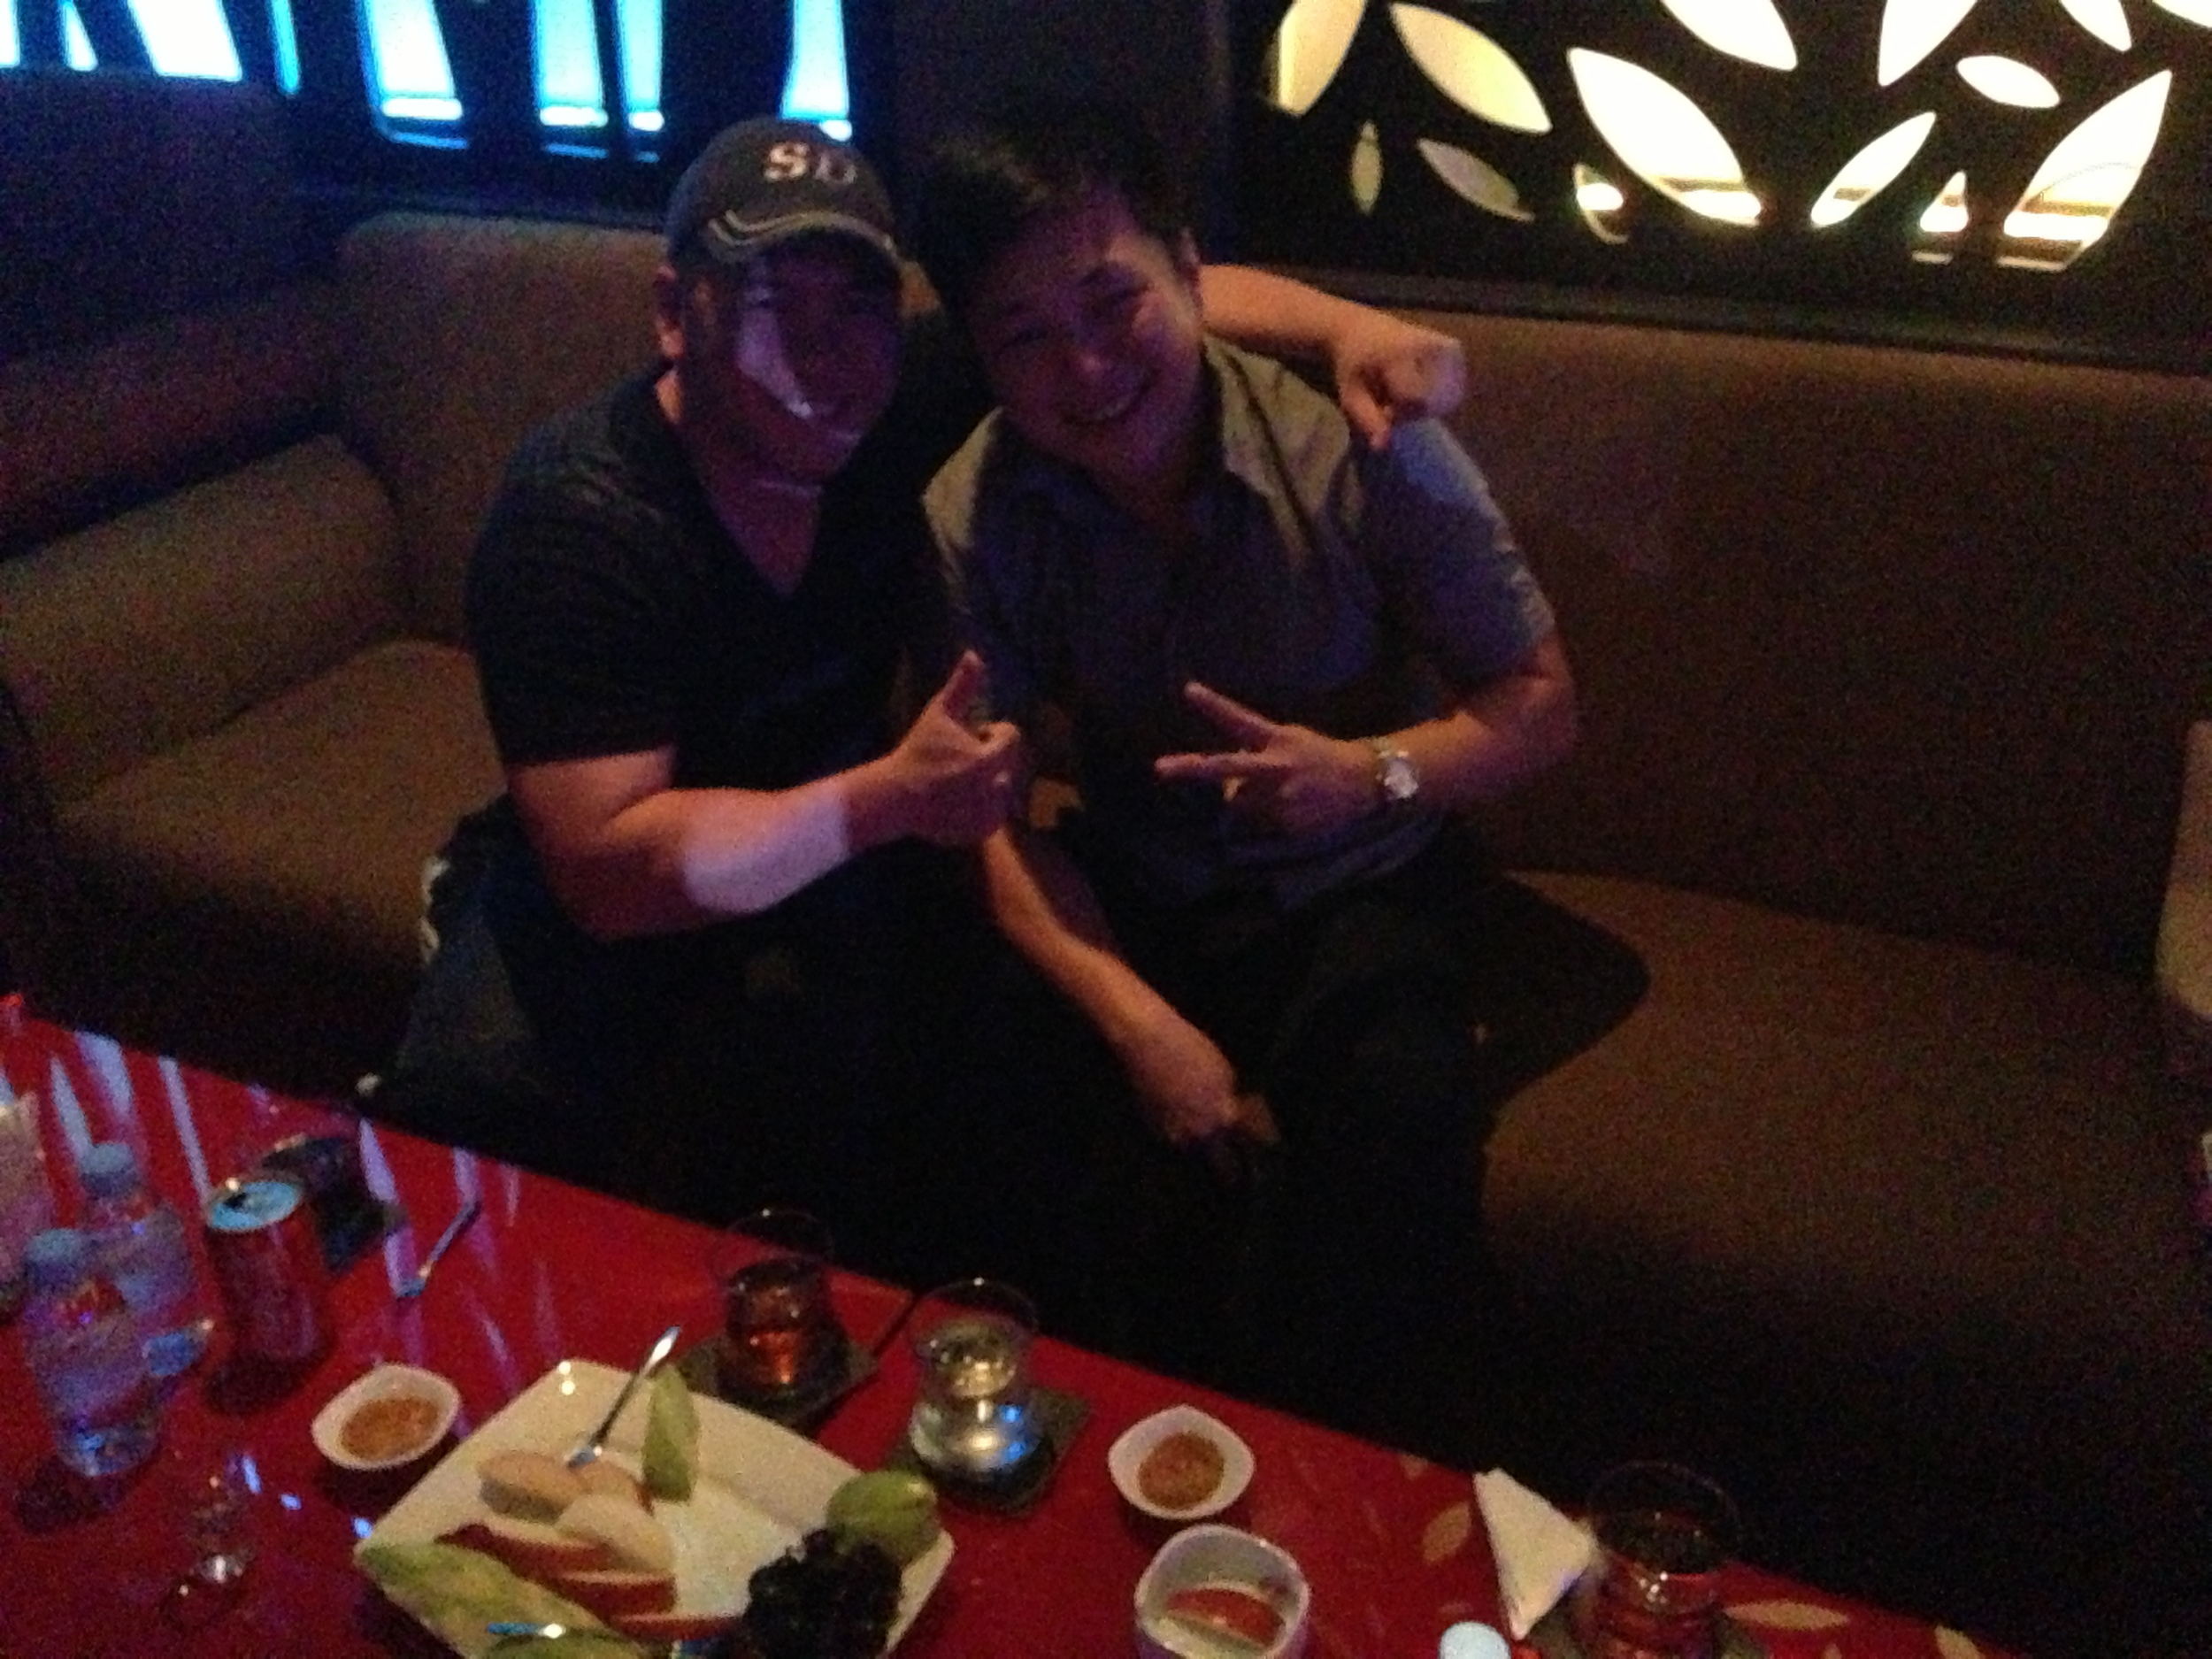 Me on the left, my new friend Dang on the right as we party it up VIP-style in Ho Chi Minh City.